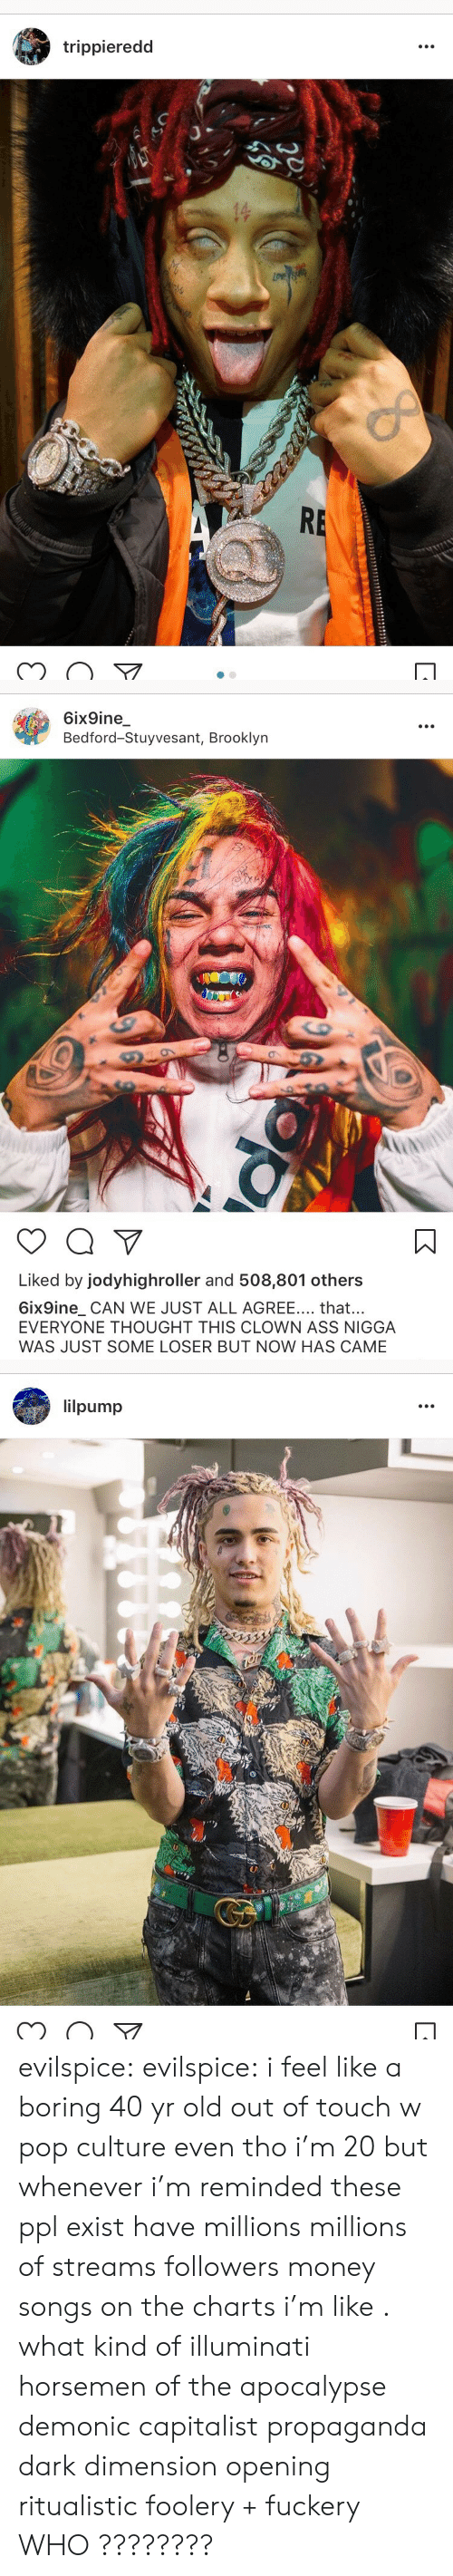 Ass, Illuminati, and Money: trippieredd  of  RE   6ix9ine  Bedford-Stuyvesant, Brooklyn  NIN  Liked by jodyhighroller and 508,801 others  6ix9ine_ CAN WE JUST ALL AGREE... that...  EVERYONE THOUGHT THIS CLOWN ASS NIGGA  WAS JUST SOME LOSER BUT NOW HAS CAME   lilpump  1322 evilspice:  evilspice:  i feel like a boring 40 yr old out of touch w pop culture even tho i'm 20 but whenever i'm reminded these ppl exist  have millions  millions of streams  followers  money  songs on the charts i'm like . what kind of illuminati horsemen of the apocalypse demonic capitalist propaganda dark dimension opening ritualistic foolery + fuckery  WHO ????????